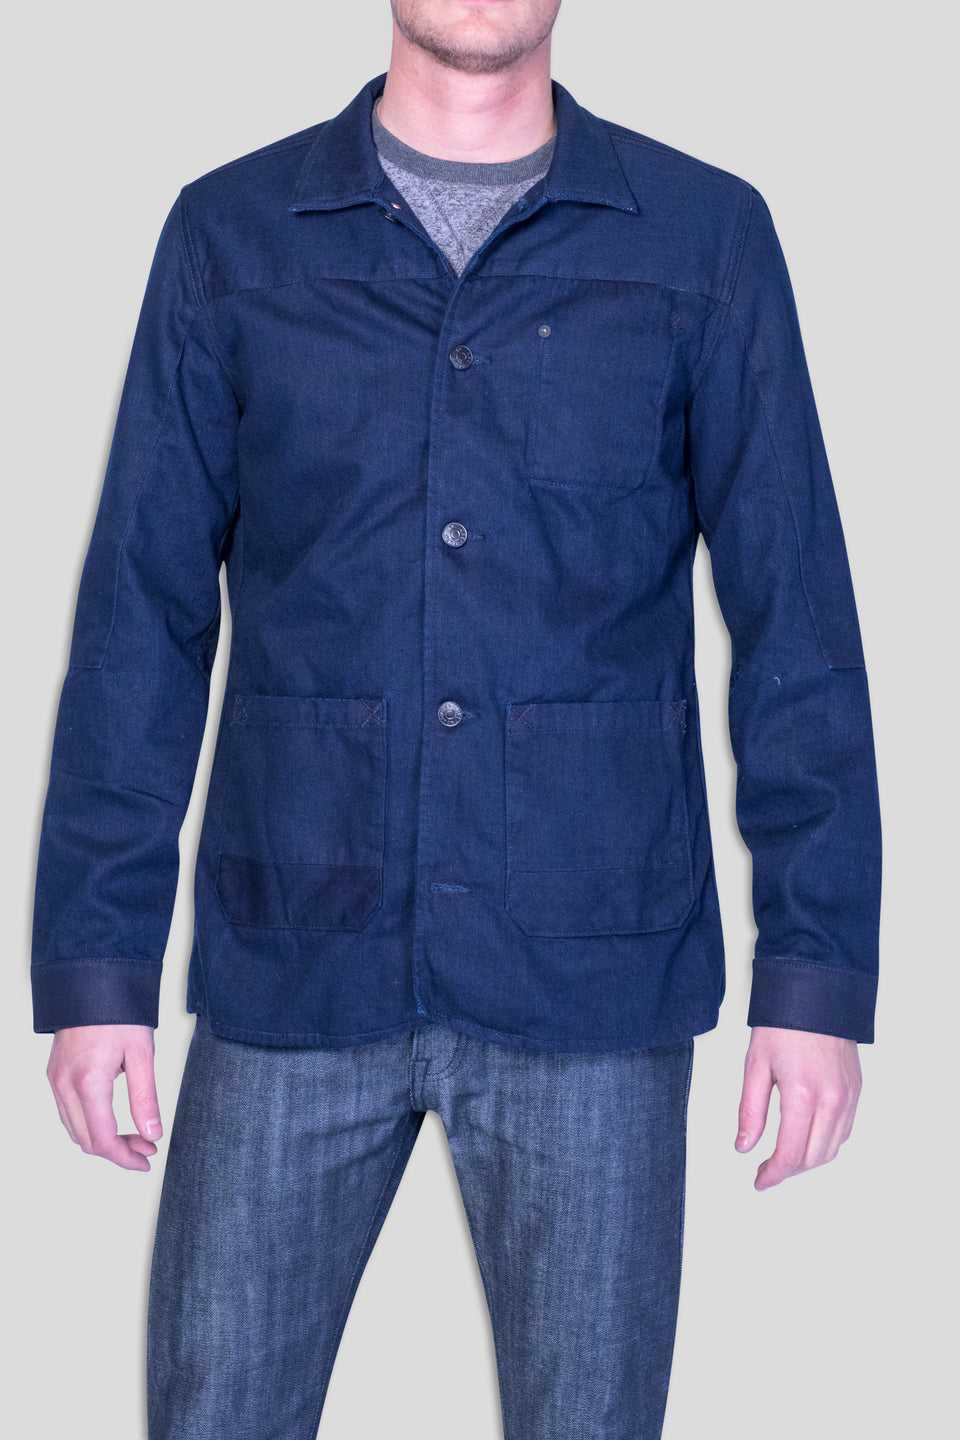 Denim.lab hunter jacket - baretta